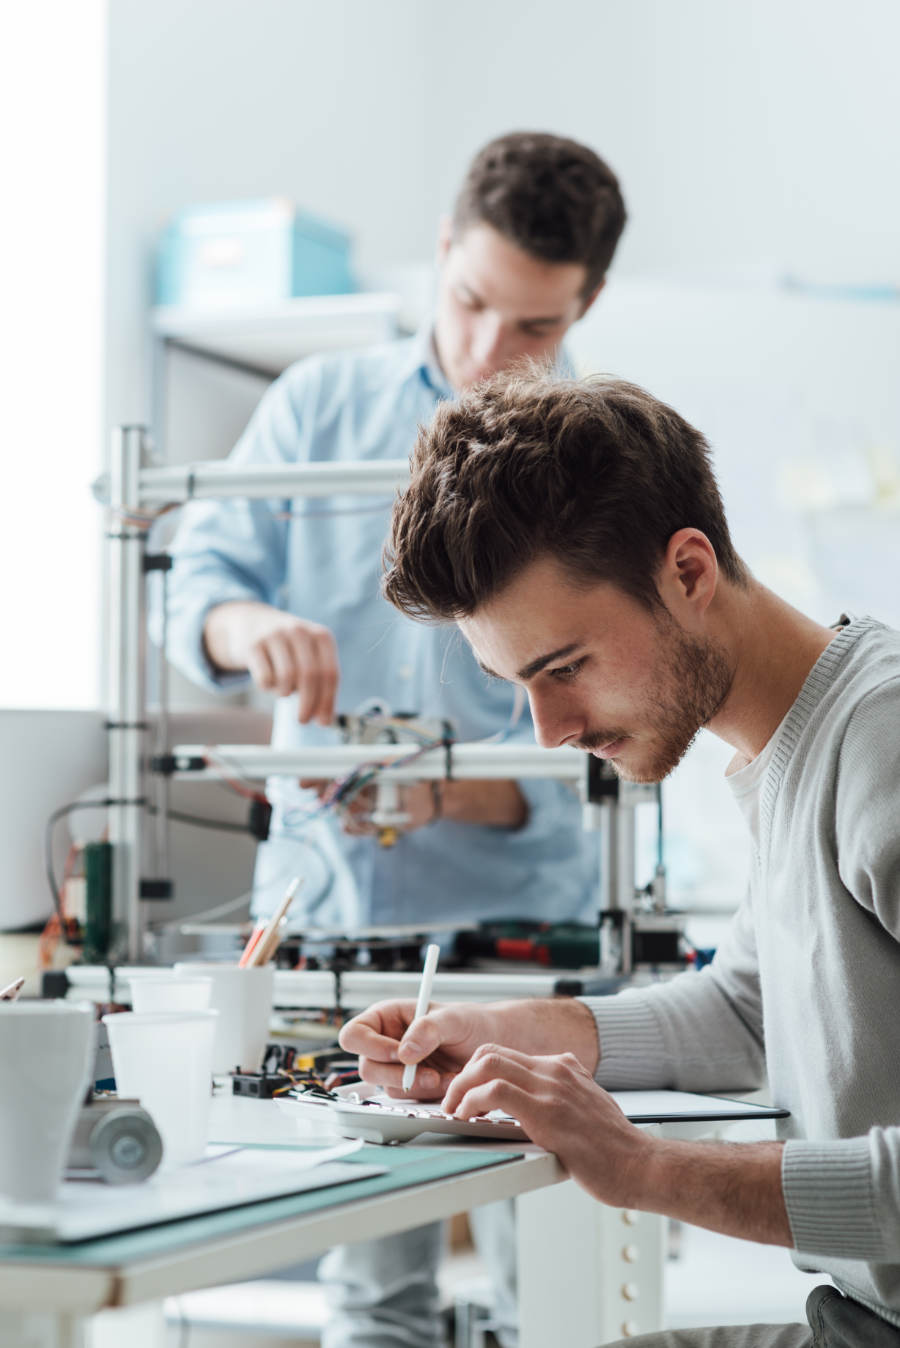 Engineering students working in the lab, a student is using a 3D printer in the background